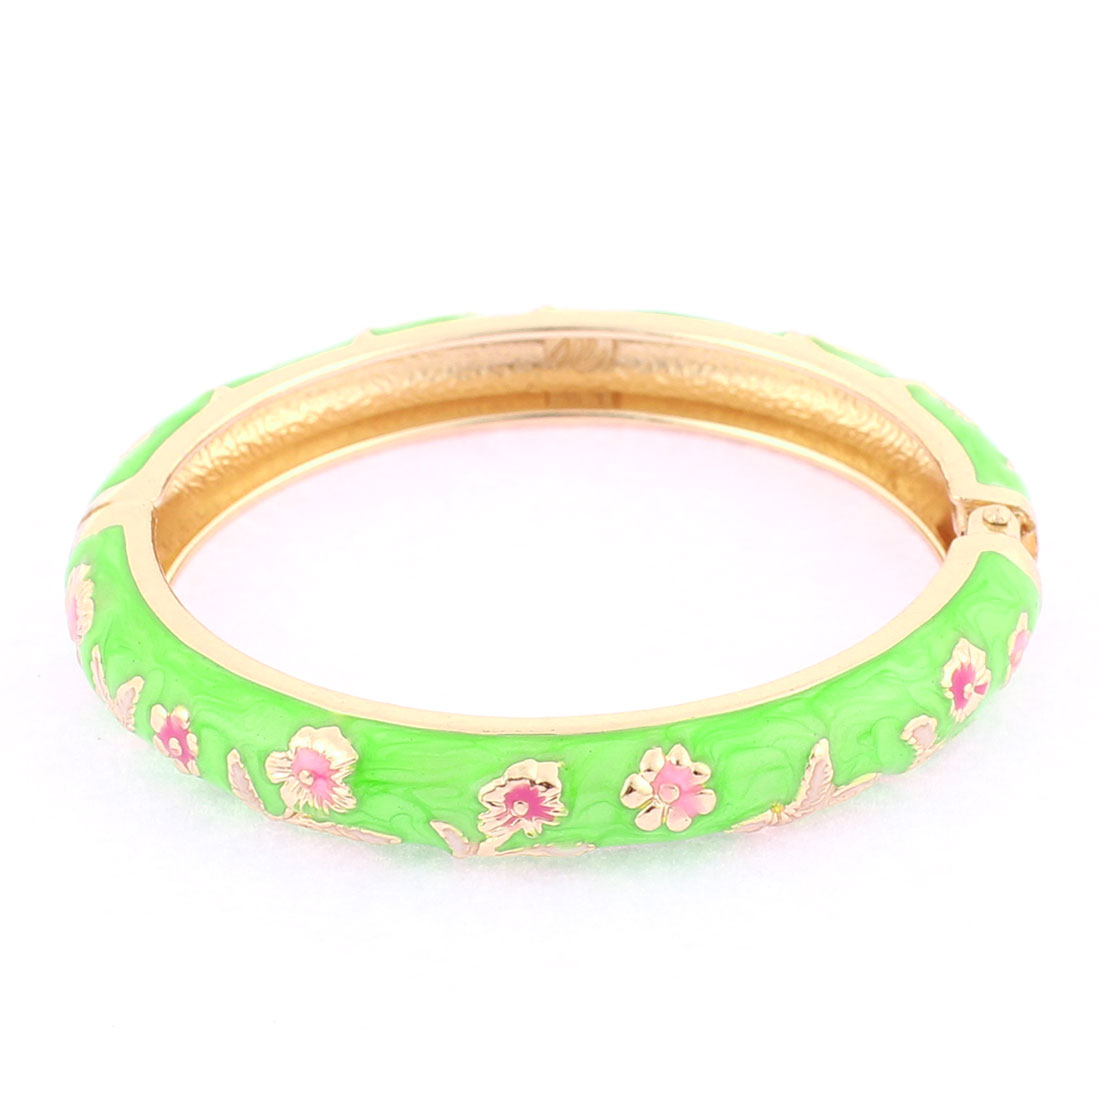 Round Floral Enamel Girls Spring Closure Bracelet Bangle Wrist Decoration Green